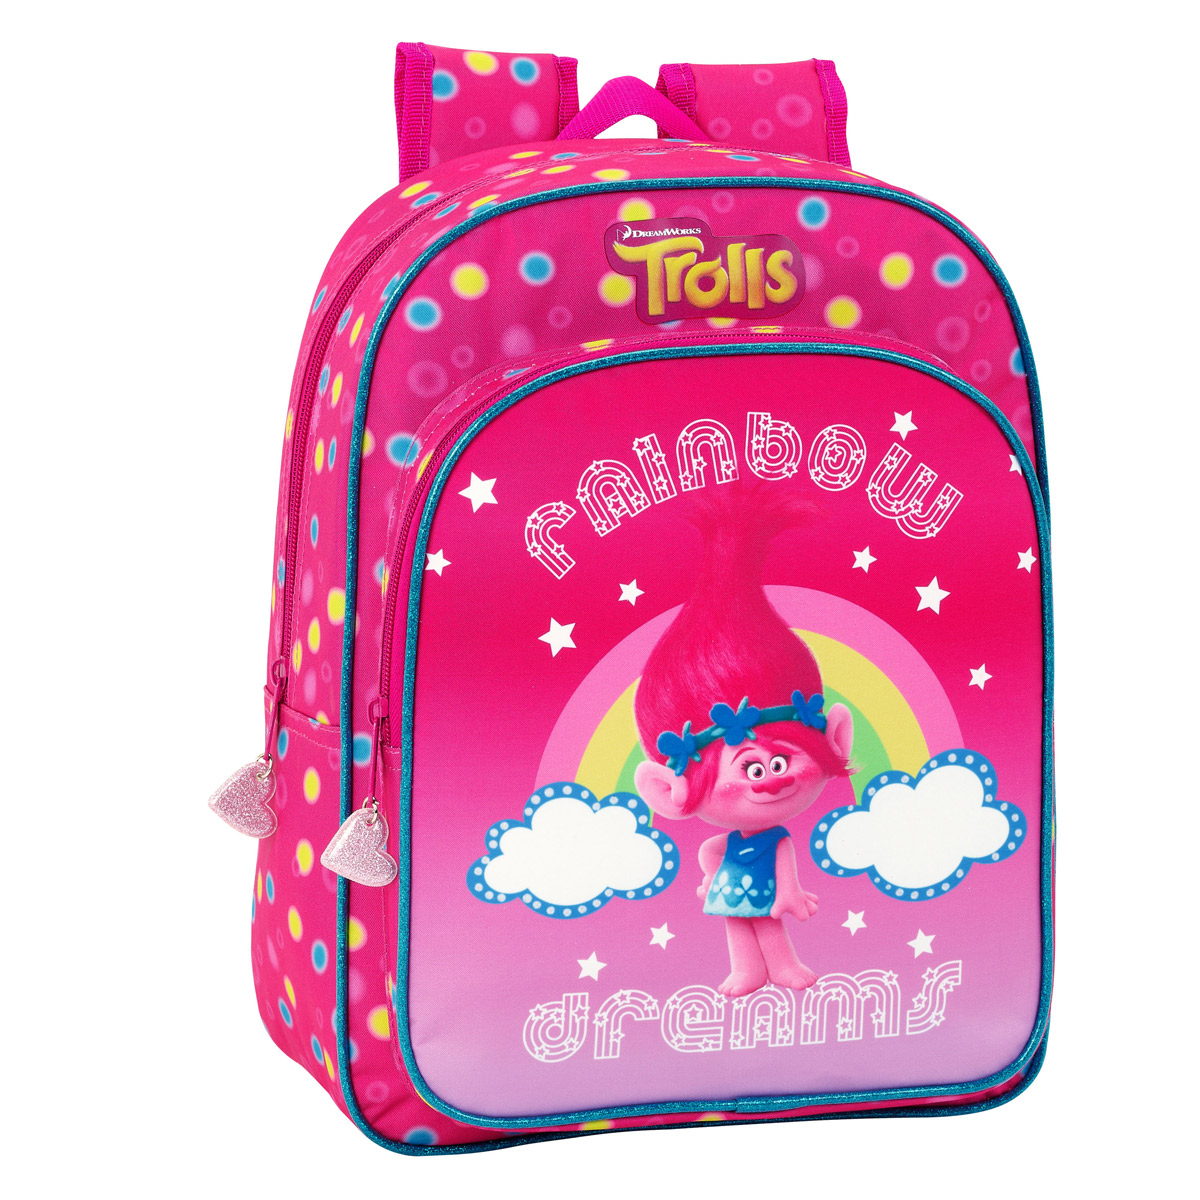 Trolls Poppy 3 Piece Set Bundle Bags – image 2